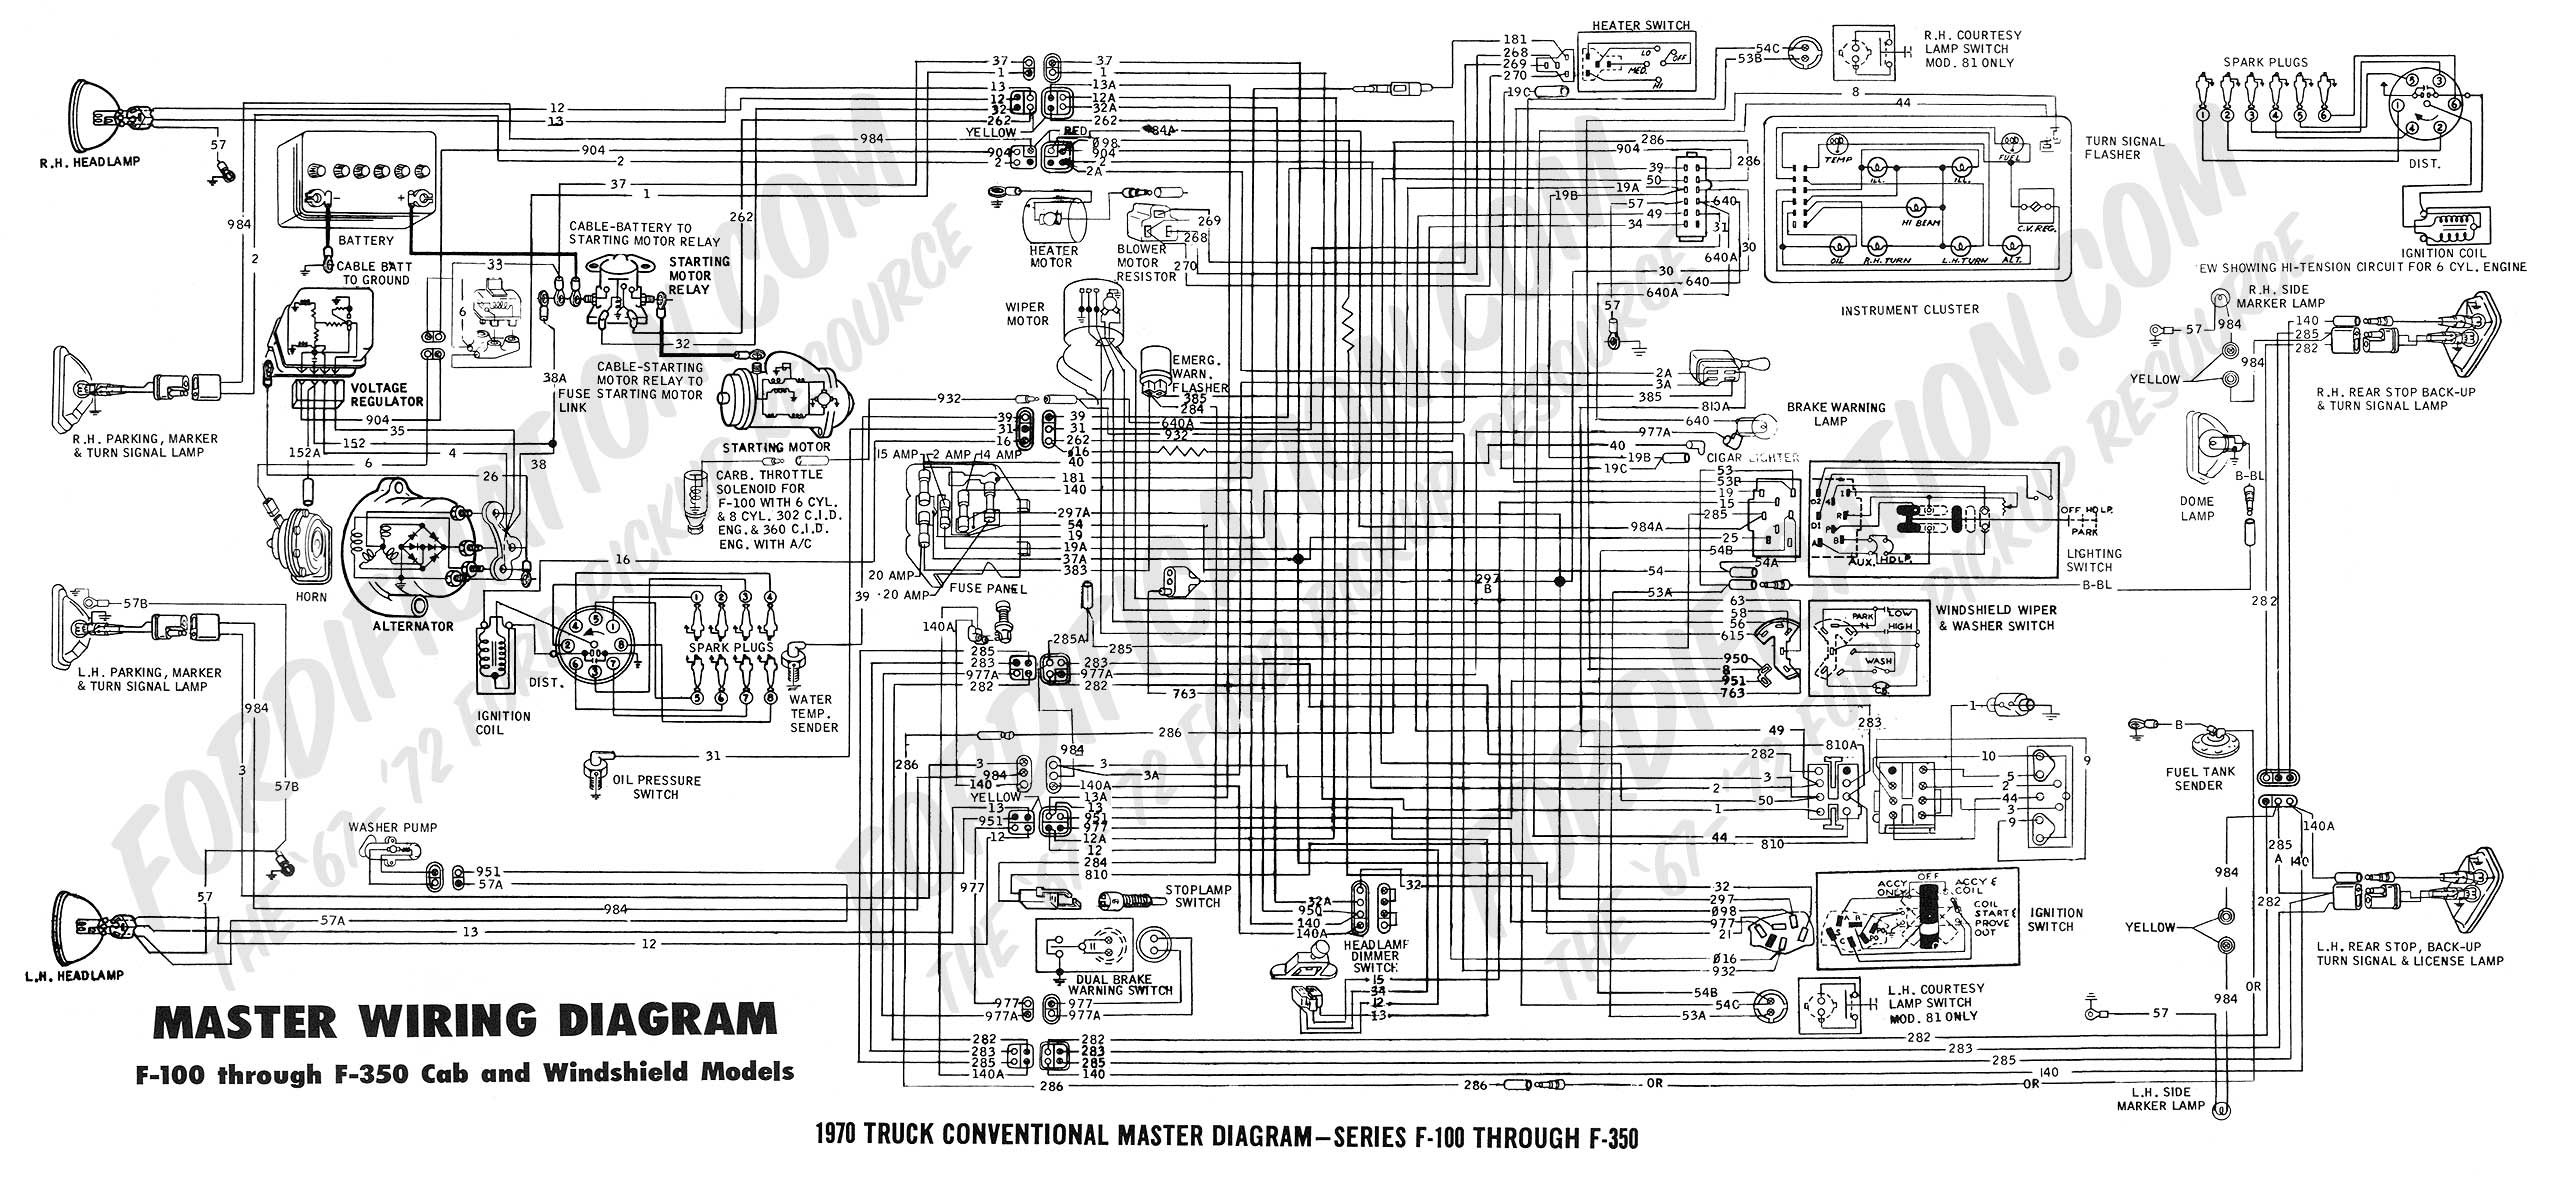 1994 ford f350 wiring harness wiring diagrams best 94 f350 wiring diagrams wiring diagrams schematic ford radio wiring harness 1994 ford f350 wiring harness